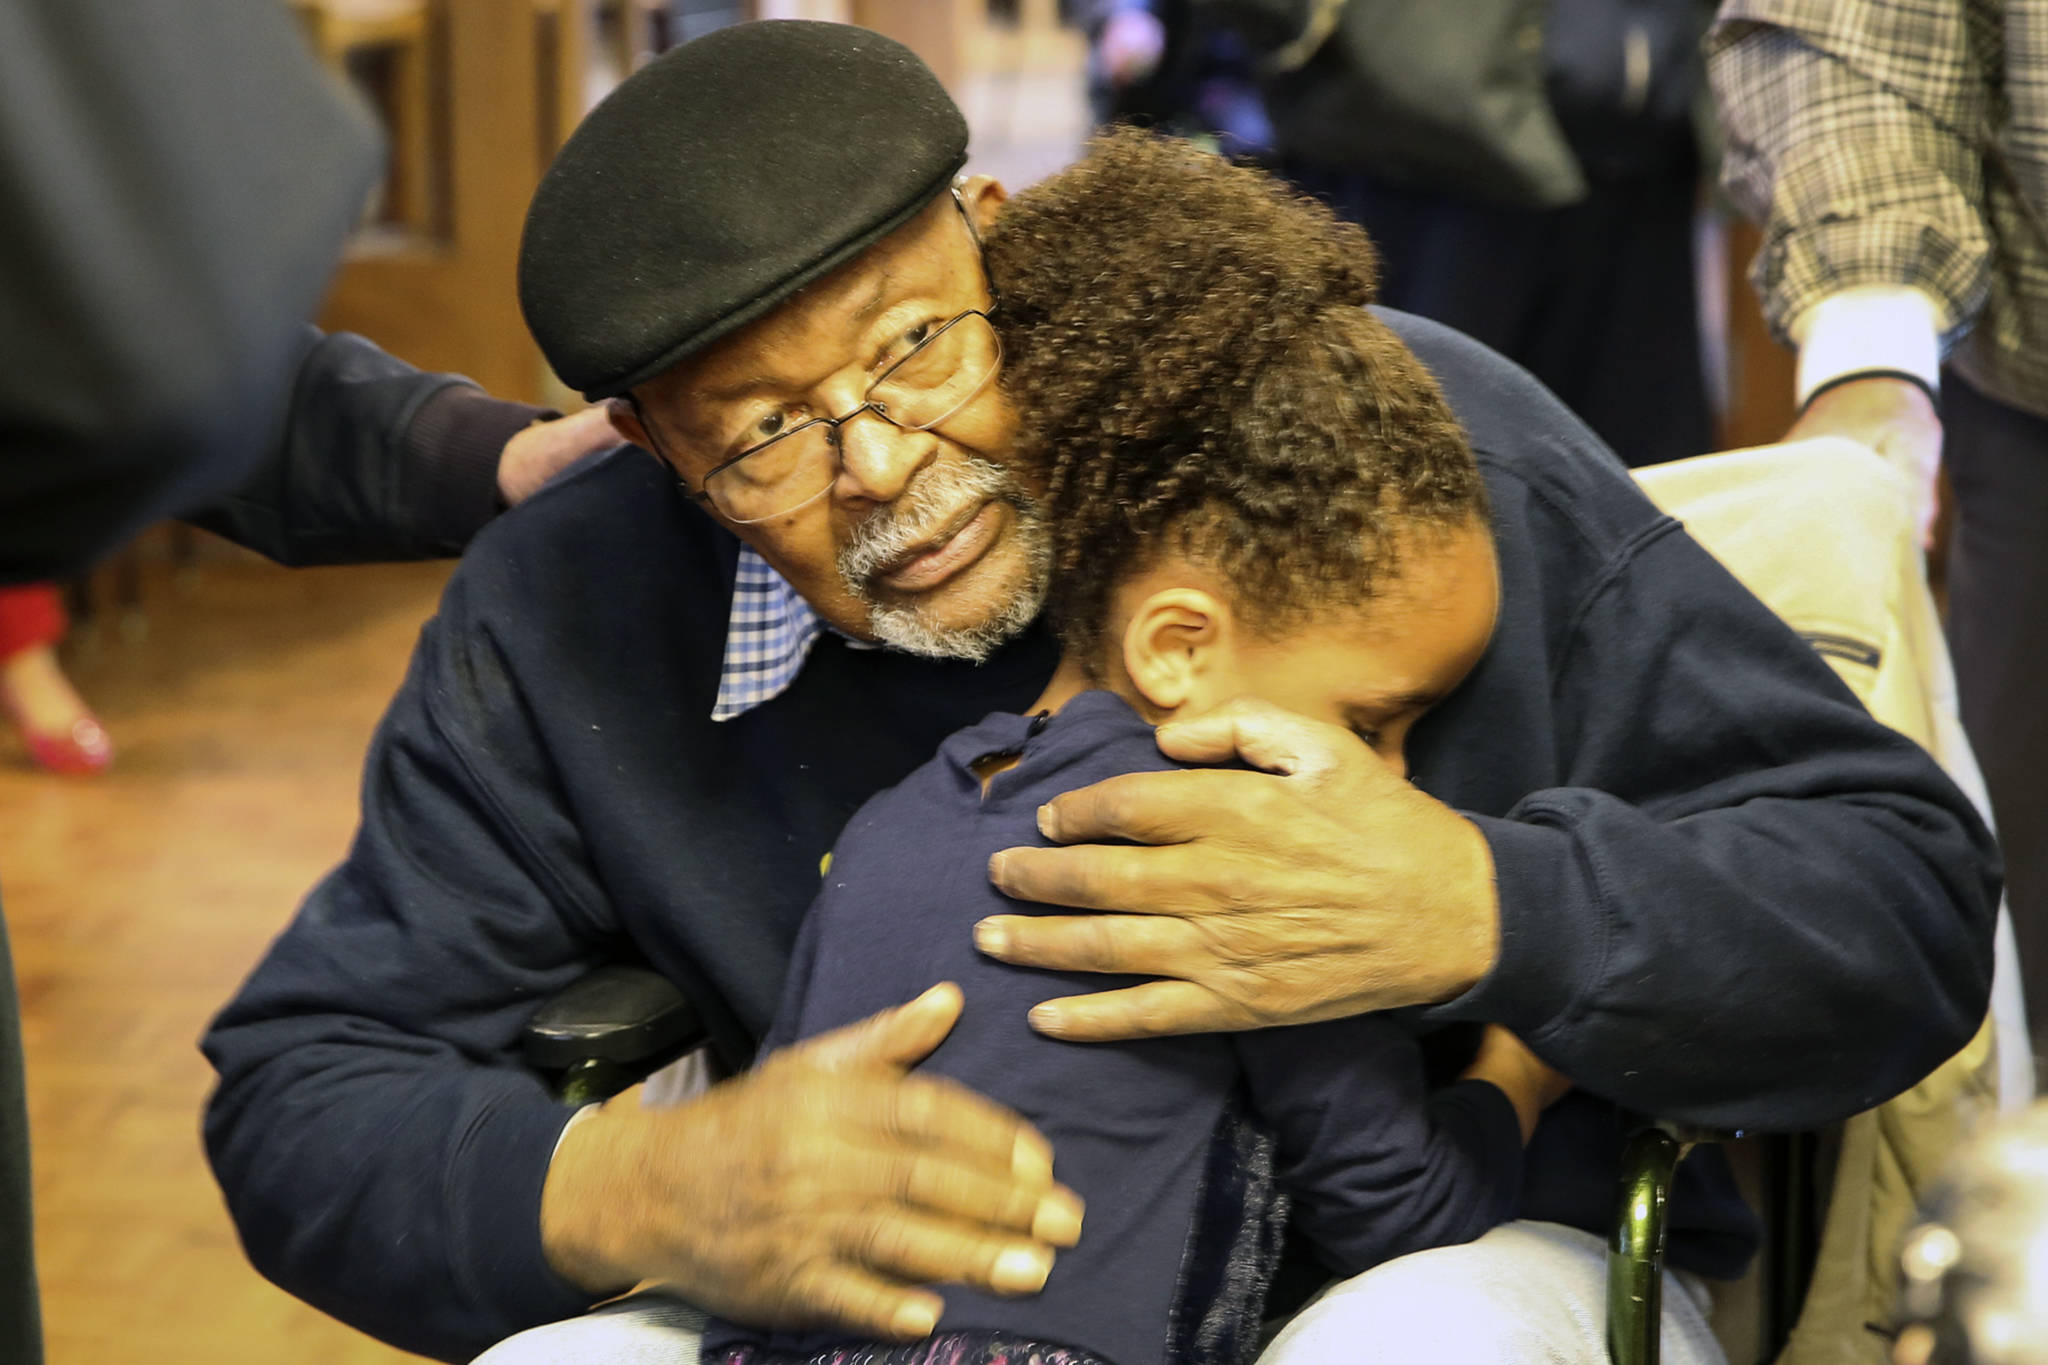 Carl Gipson gets a hug from his great-granddaughter, MyElli Richards, 4, during his birthday party at Carl Gipson Senior Center in Everett on Jan. 12, 2019. (Kevin Clark / The Herald)